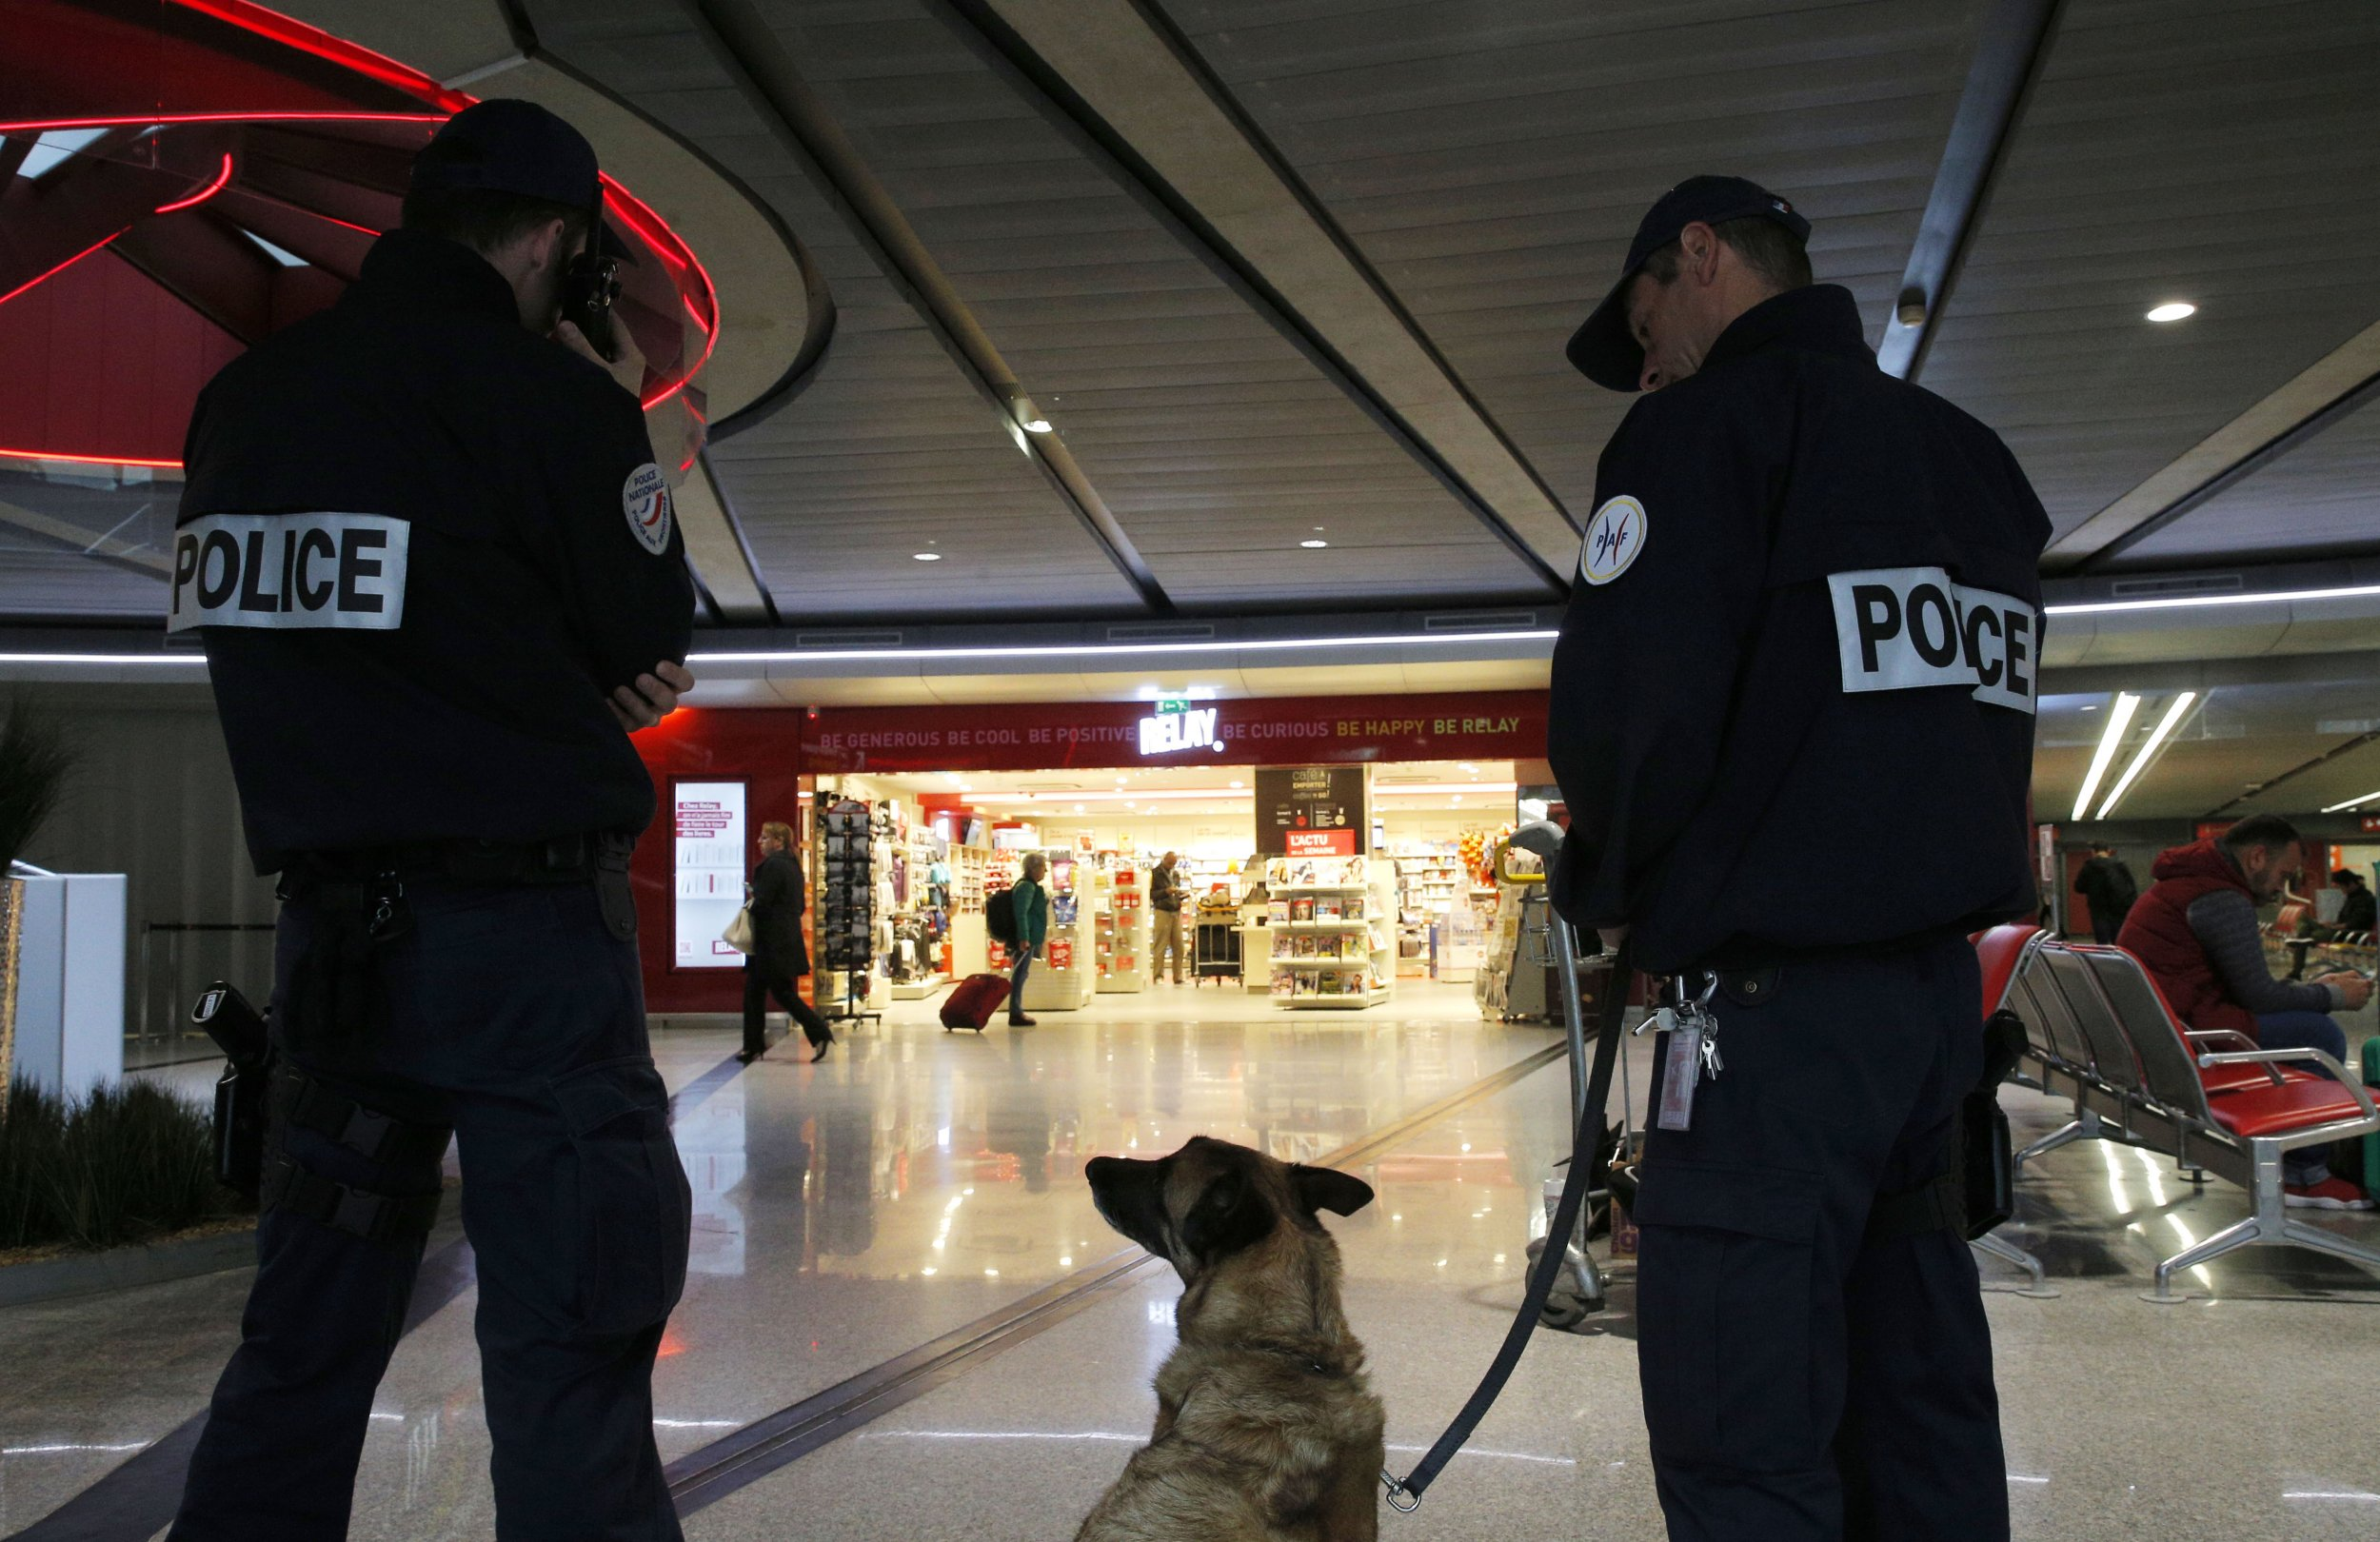 Police officers patrol at Charles de Gaulle airport, outside of Paris, Thursday, May 19, 2016. An EgyptAir flight from Paris to Cairo with 66 passengers and crew on board crashed into the Mediterranean Sea off the Greek island of Crete early Thursday morning, Egyptian and Greek officials said. (AP Photo/Christophe Ena)